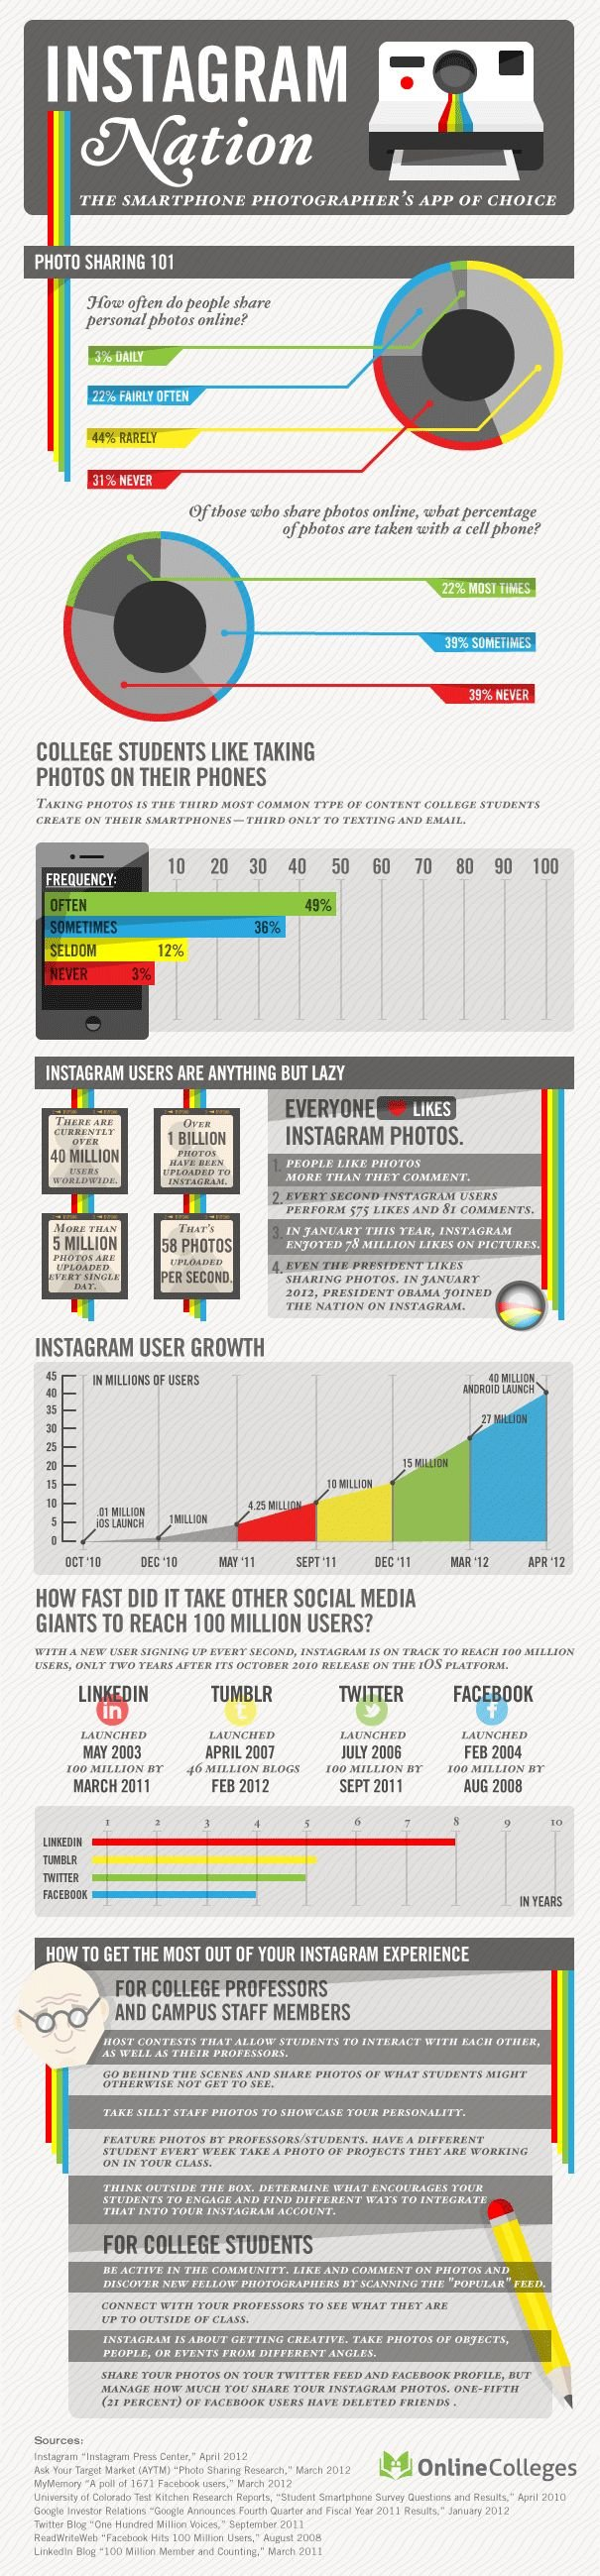 The #Instagram Nation: The Smartphone photographer's app of choice #infographic